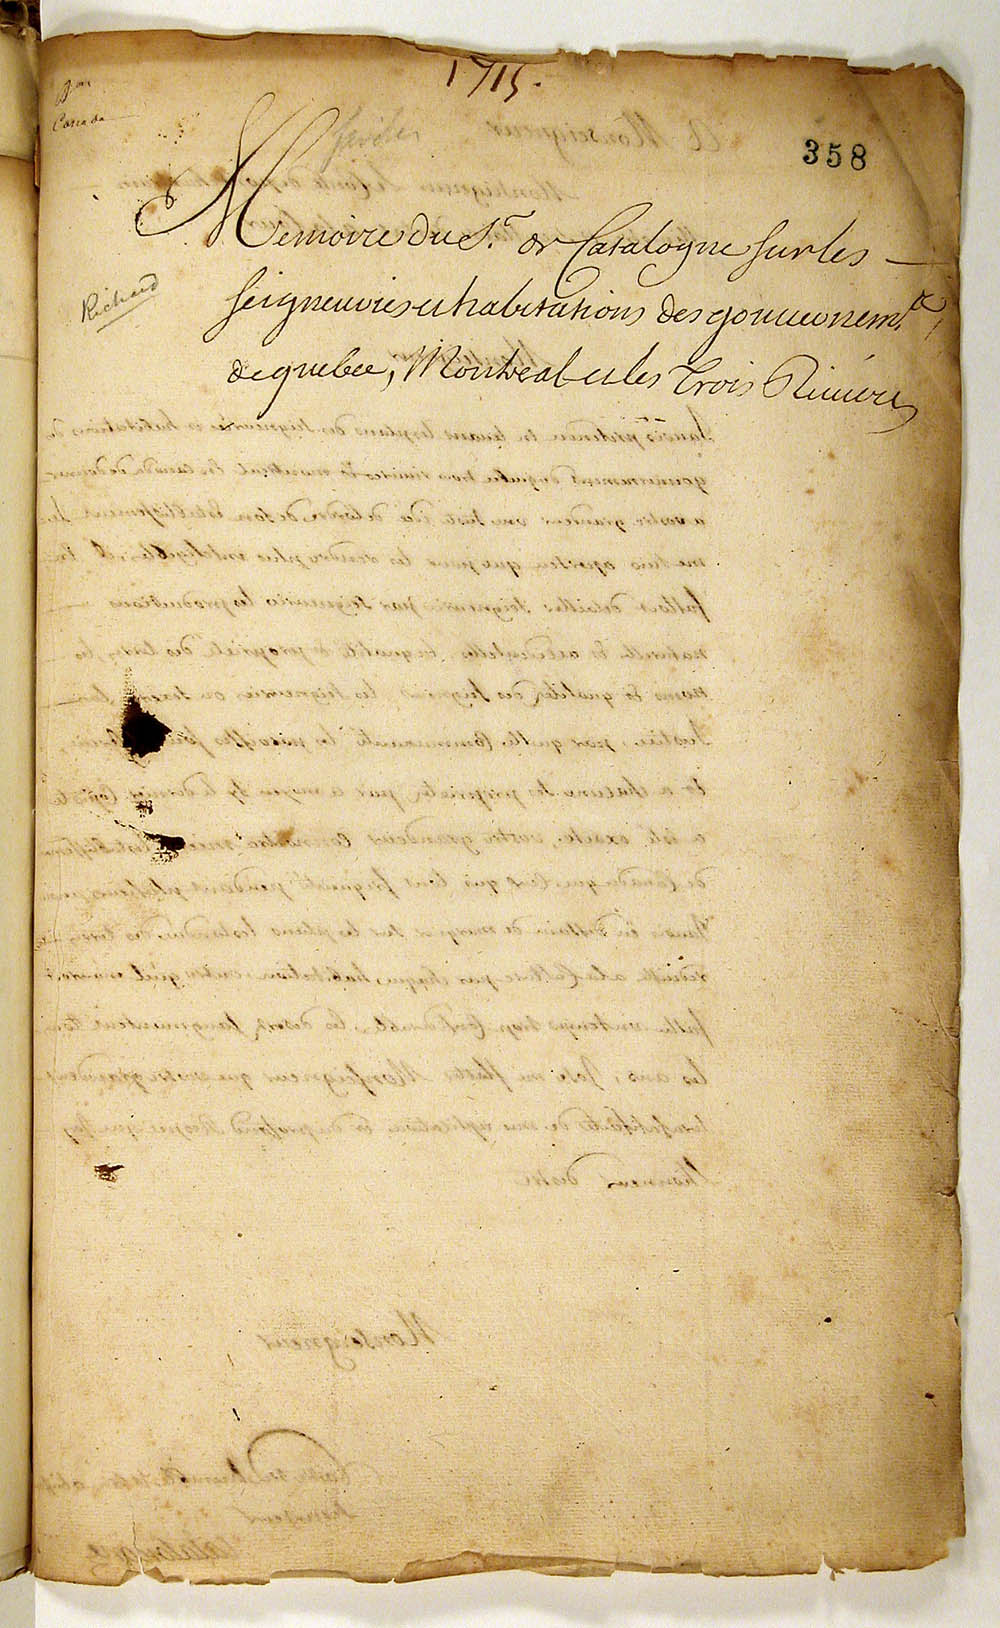 [Report of the Sieur de Catalogne on the Seigneuries and buildings of the governments of Québec, Montréal and Trois-Rivières], by Gédéon de Catalogne, surveyor and cartographer, 1715. FR CAOM COL F3 2 fol. 358-388